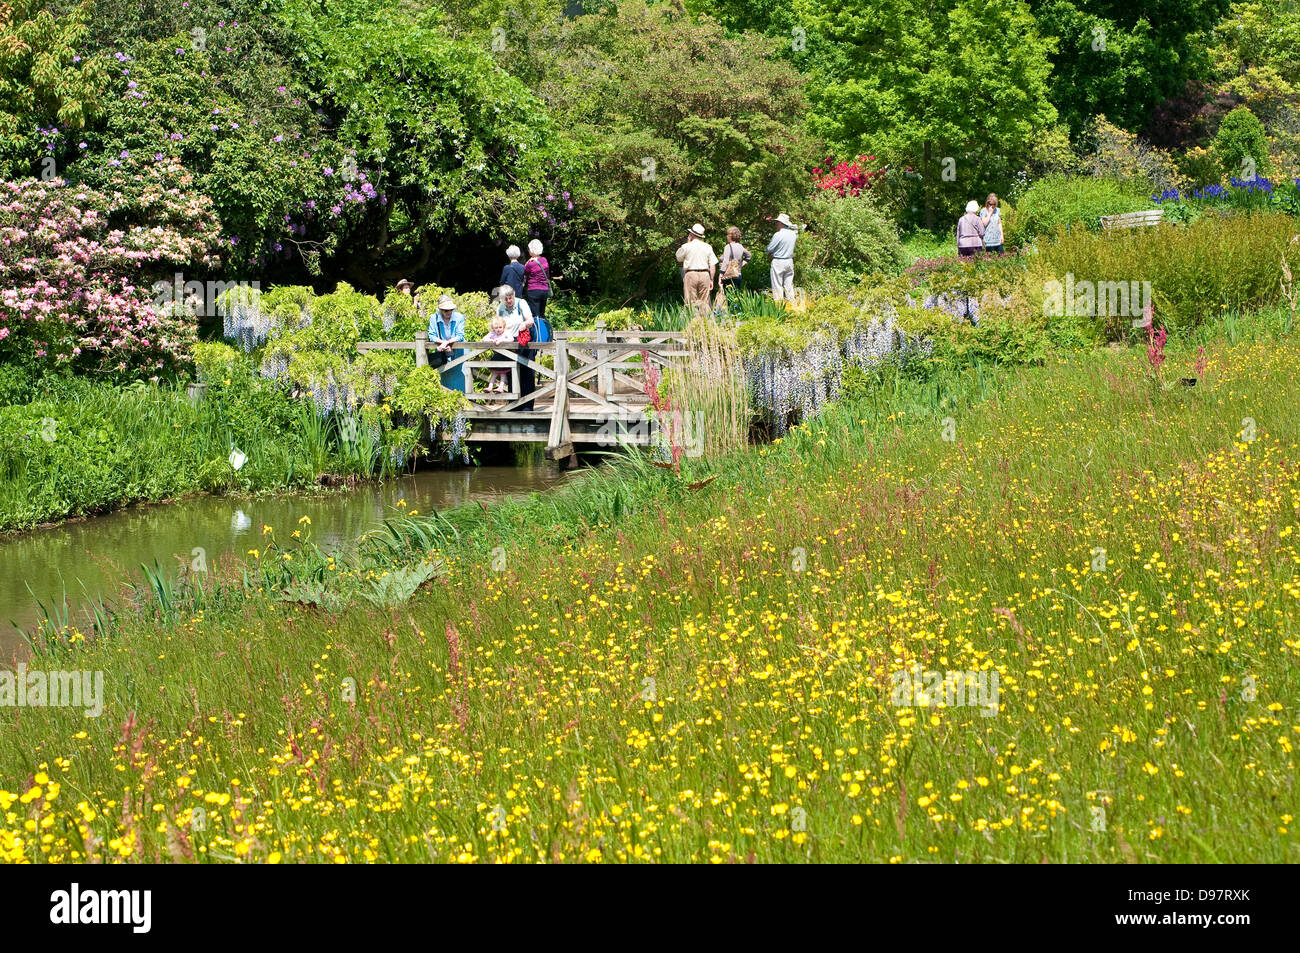 Meadow of yellow buttercups flowers at Wisley Garden, Surrey, UK - Stock Image